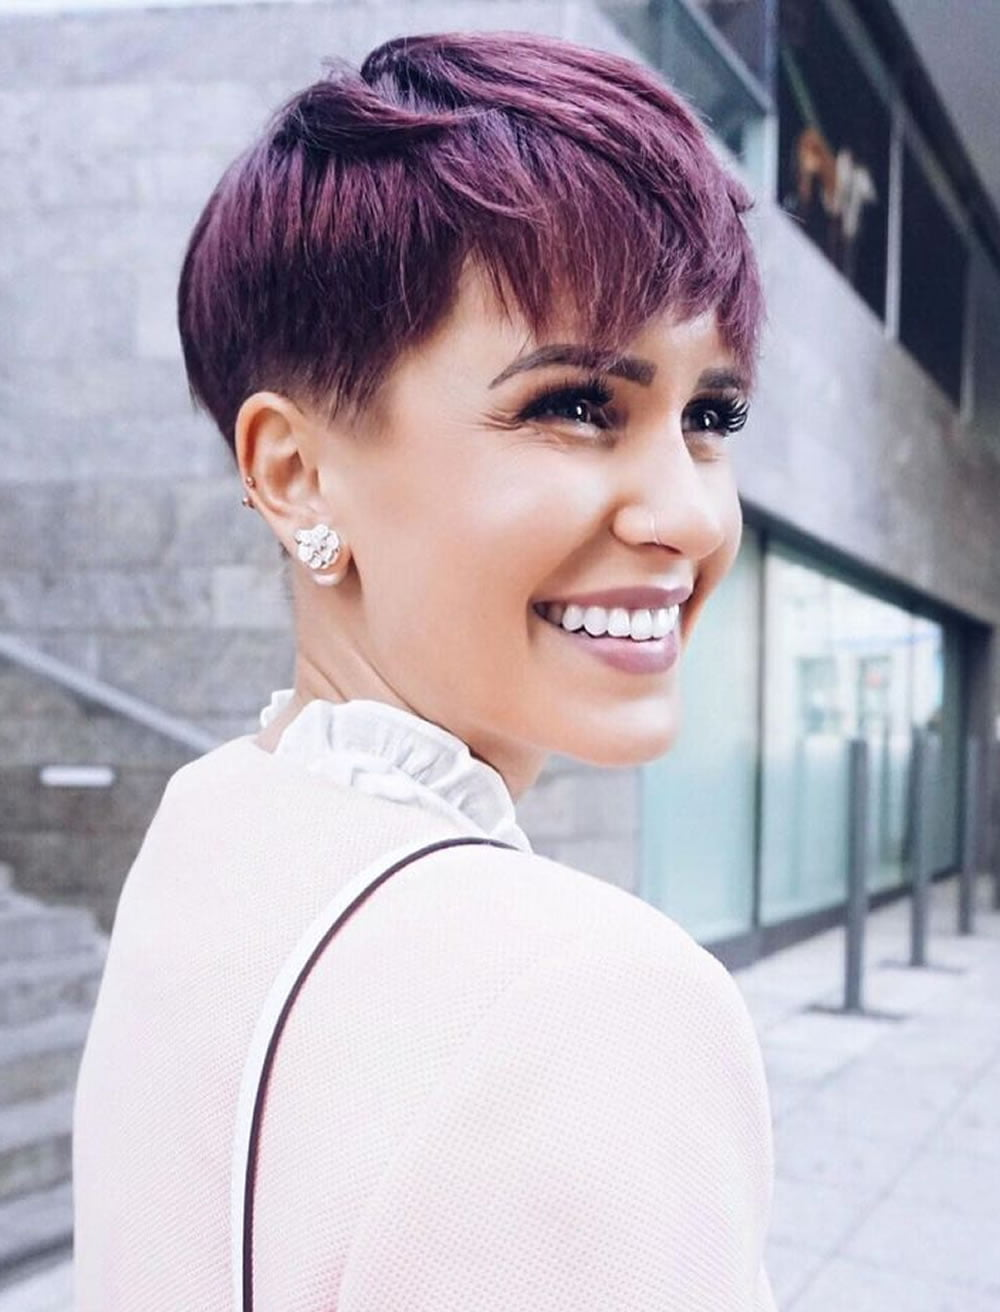 Short Hair Hairstyles For Spring Amp Summer 2018 2019 Page